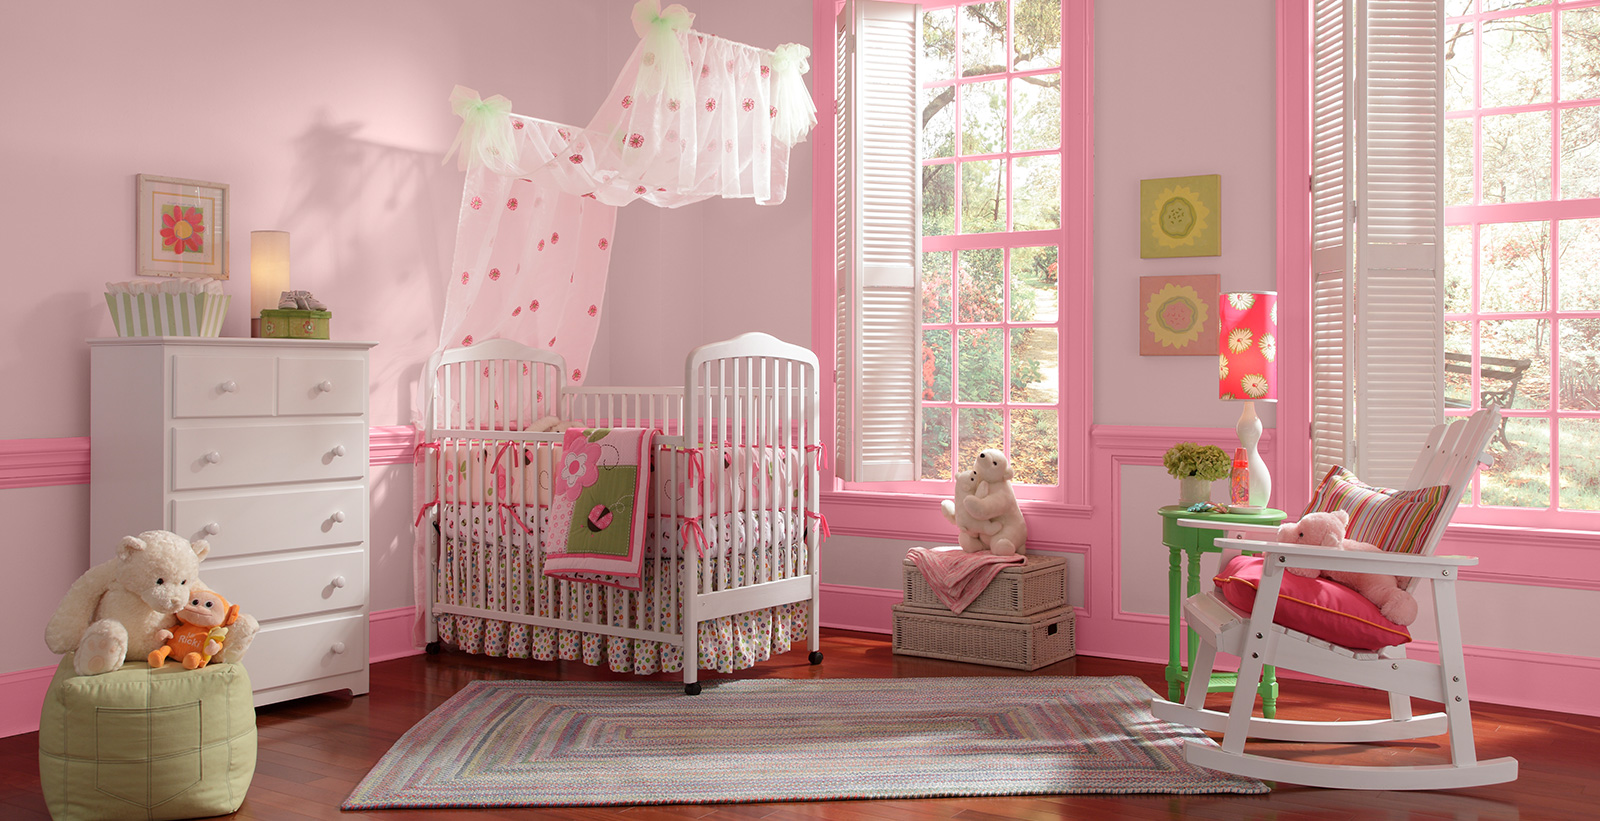 Youth room with red walls, pink trim, white nursery crib with white rocking chair.